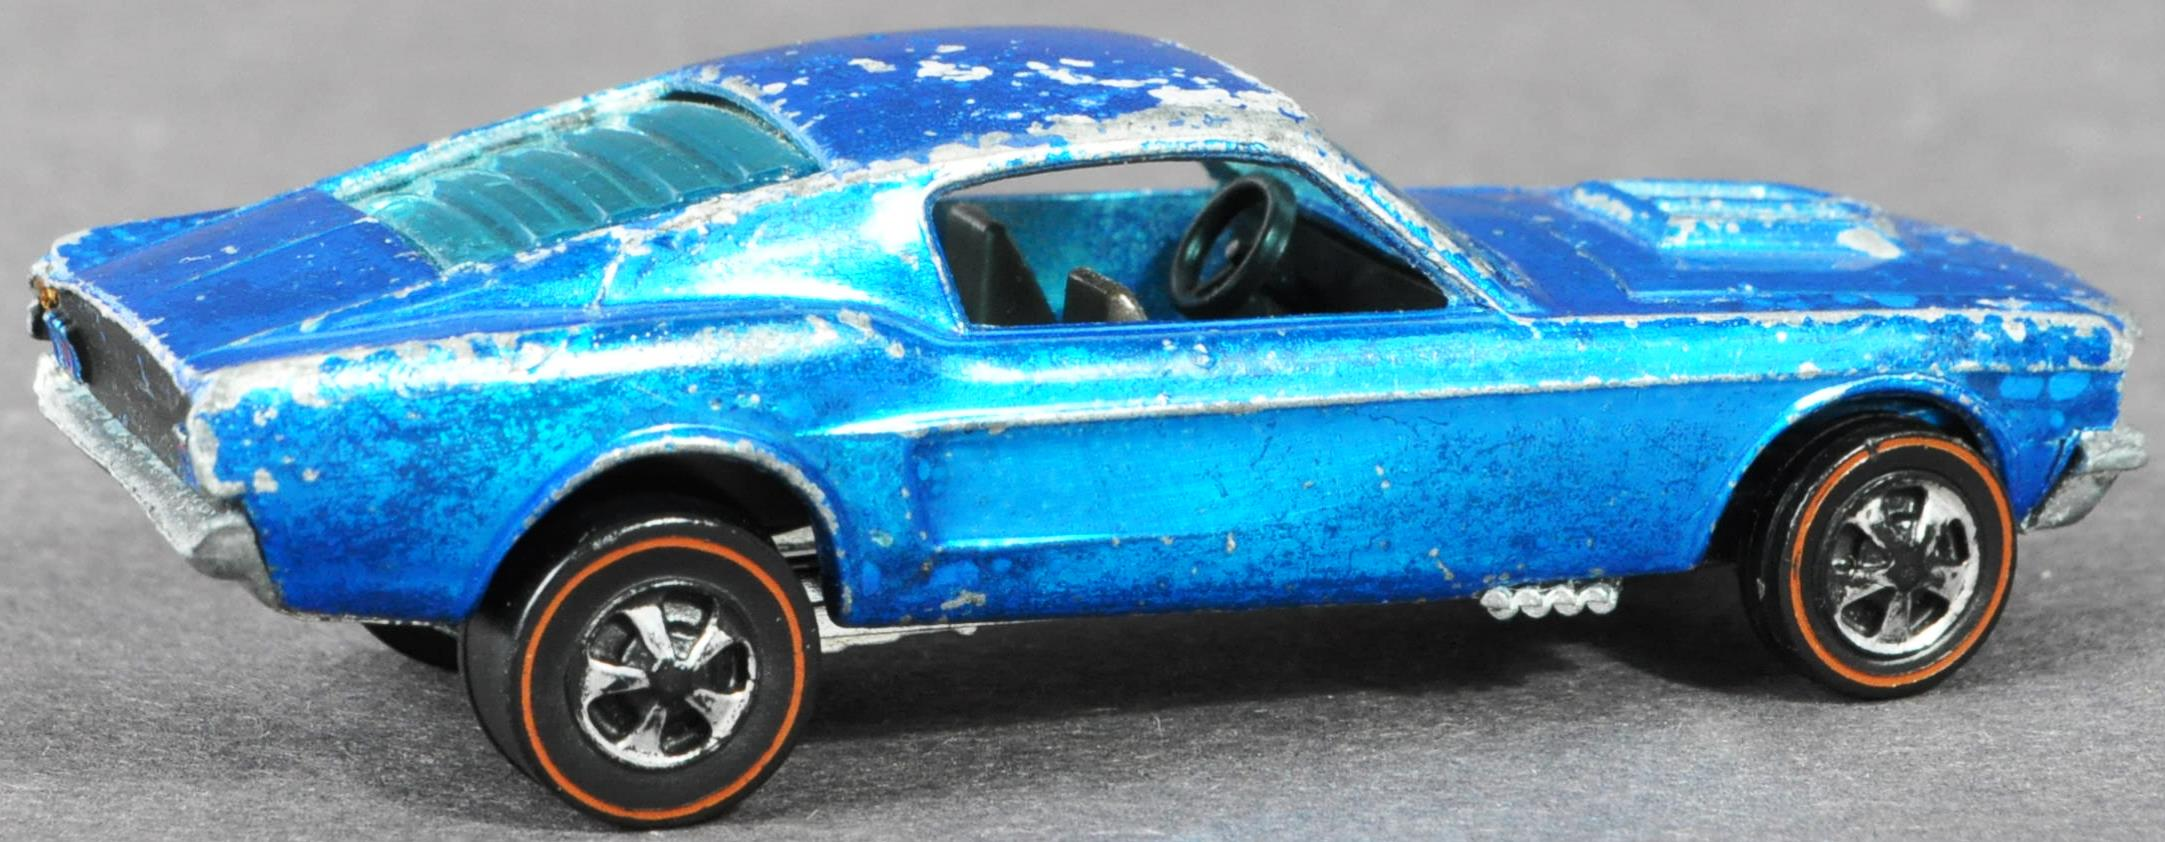 RARE HOT WHEELS CUSTOM MUSTANG WITH LOUVERED WINDOW - Image 3 of 5